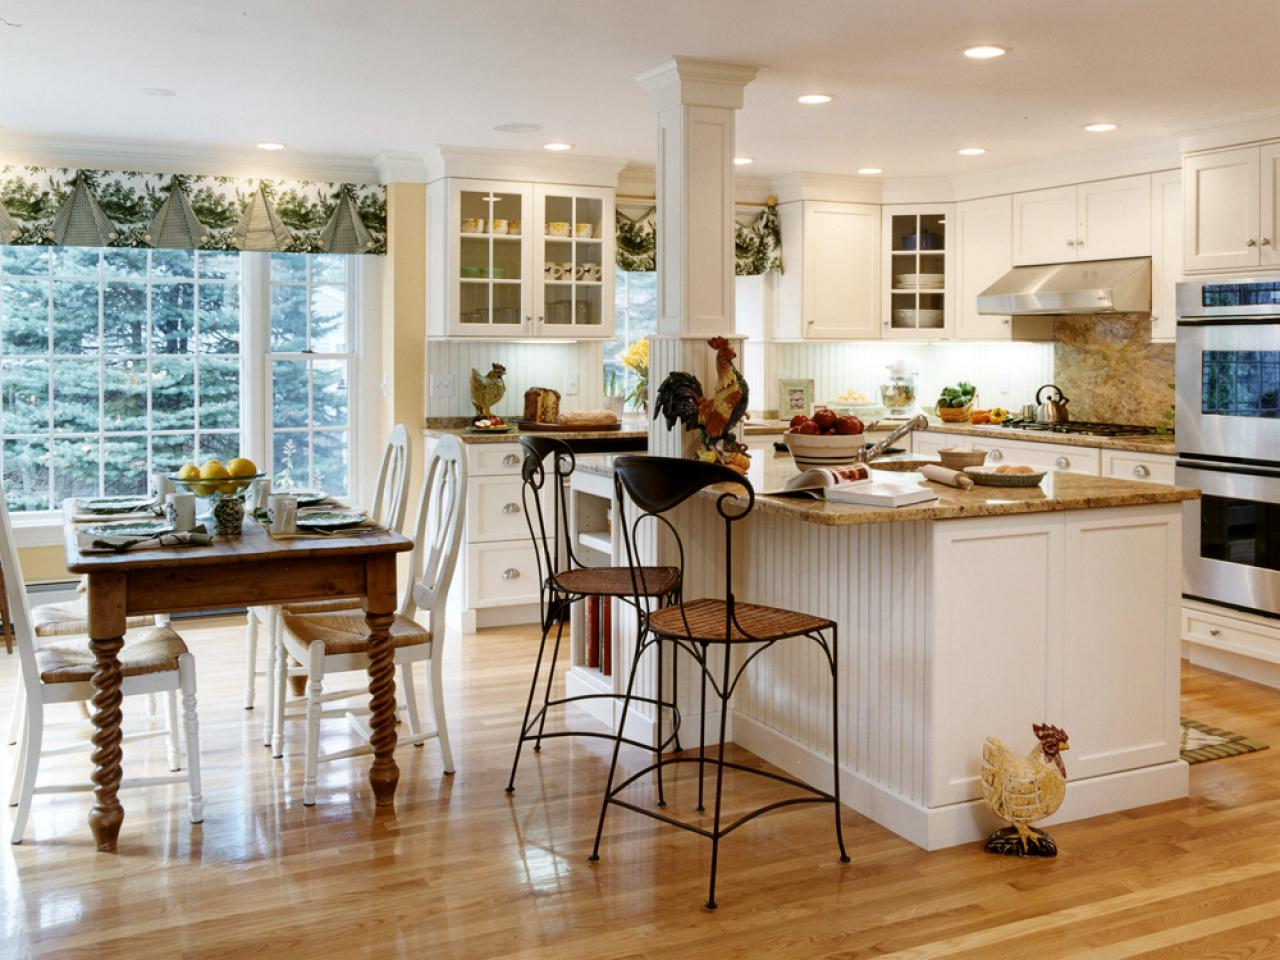 Wooden country style kitchens kitchen design images - kitchen in country style with wooden floors, wooden LROERFS